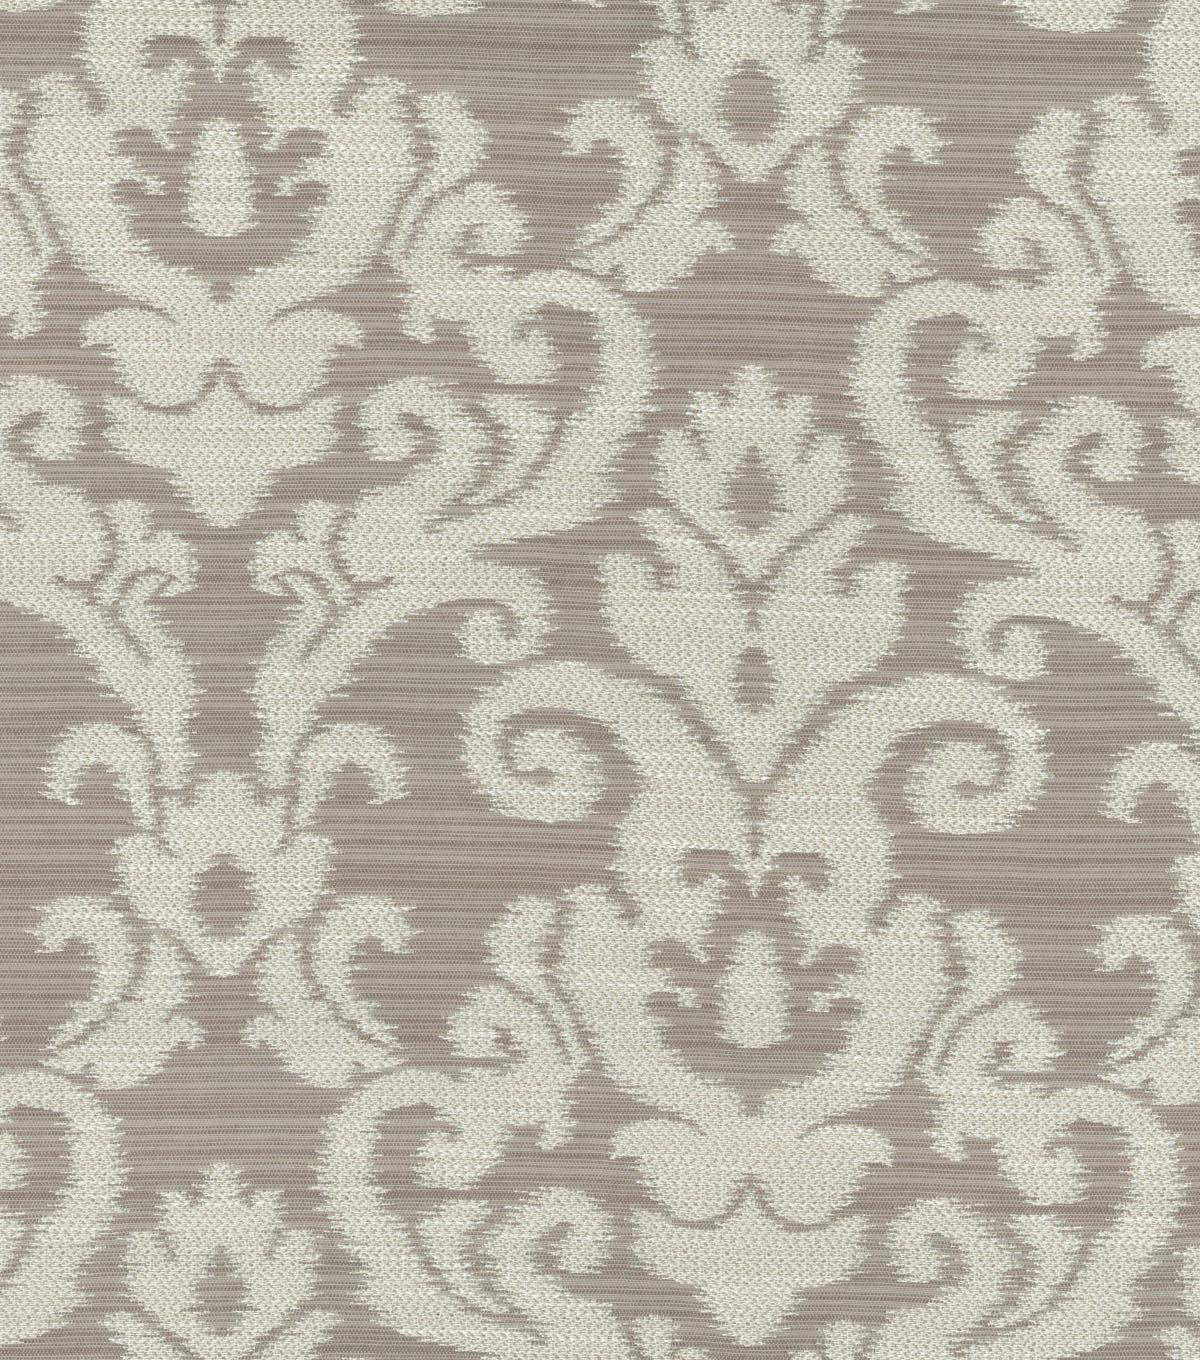 Home Decor 8\u0022x8\u0022 Swatch Fabric-Waverly Kenwood Damask Flint